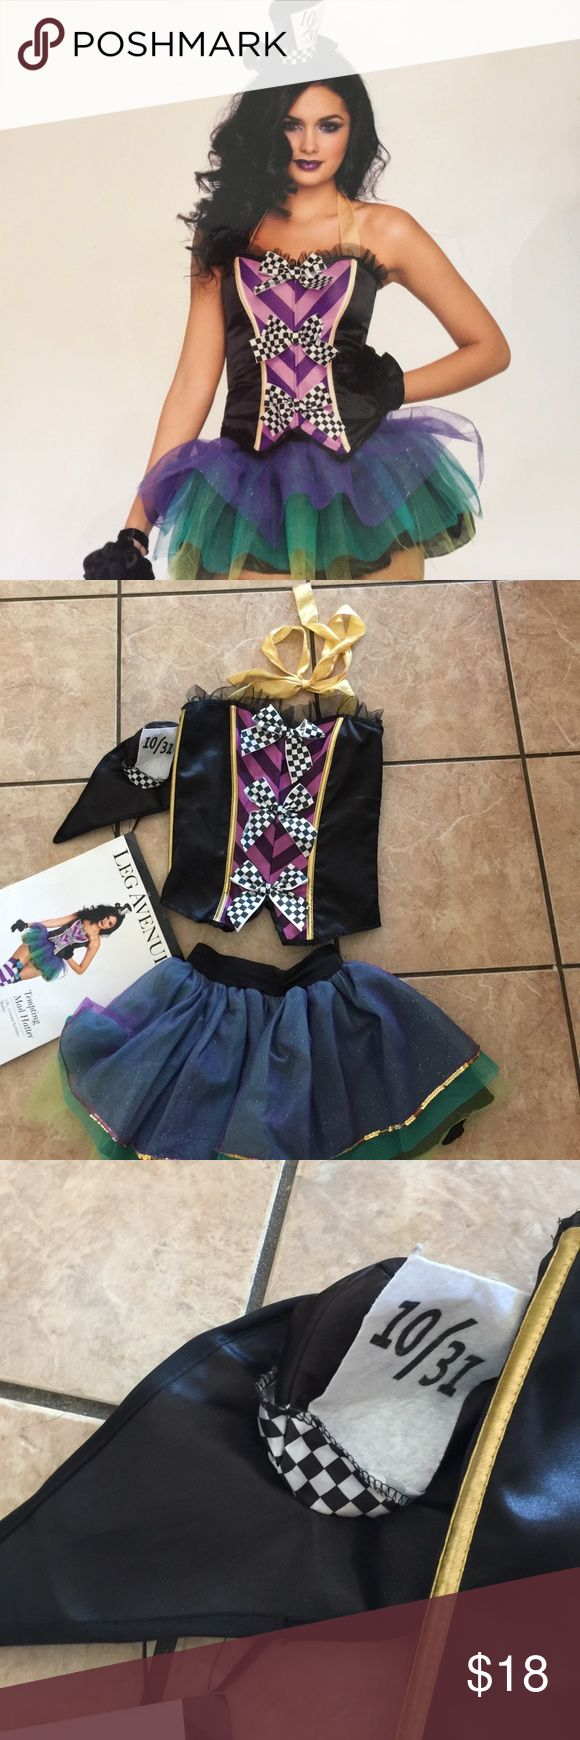 Leg avenue costume mad hatter Super cute mad hatter costume. Size m. Missing leggings and gloves  Has hat top and skirt leg avenue Other